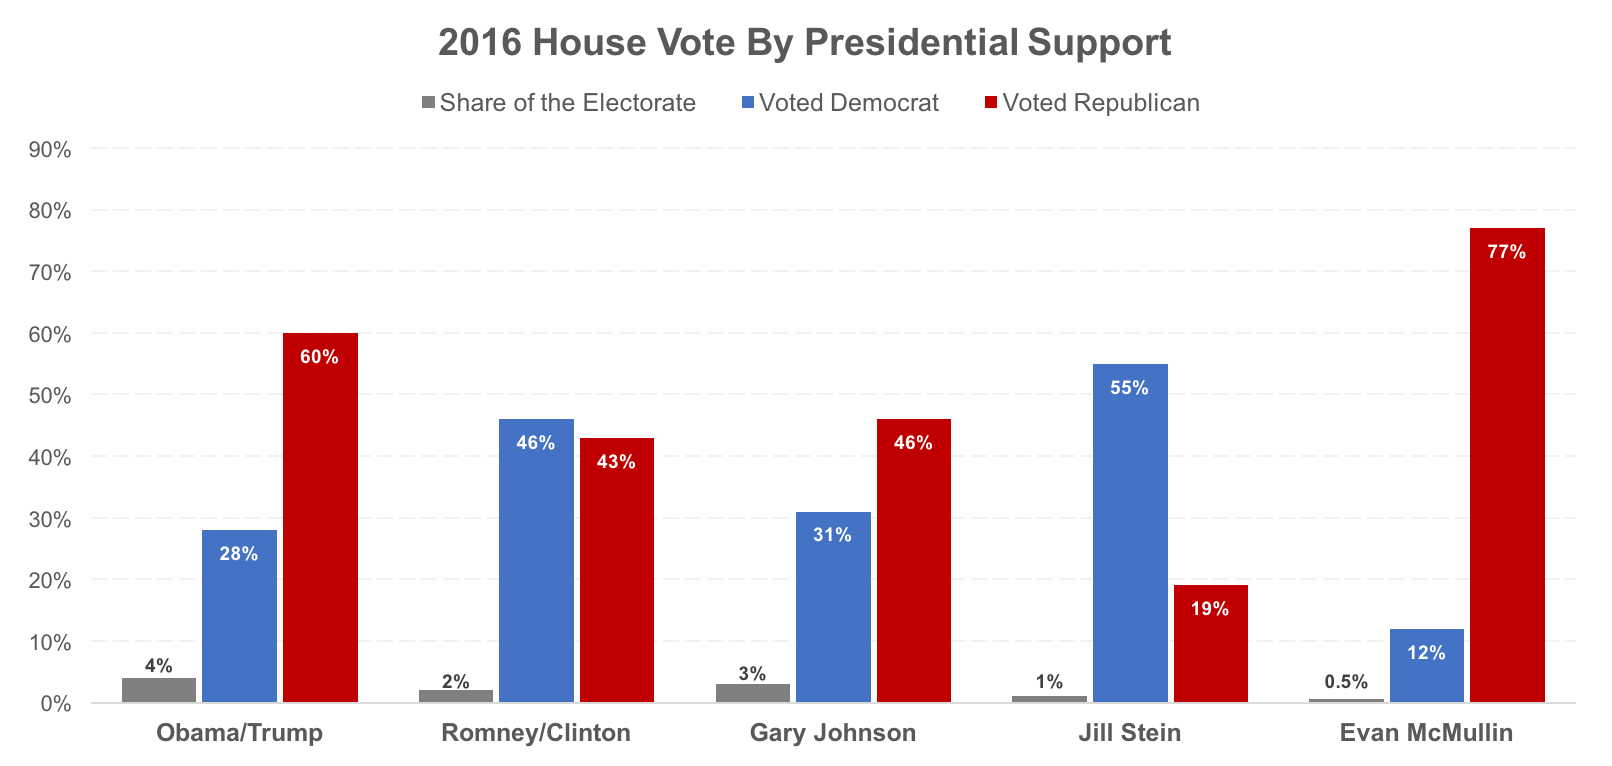 2016 House Vote By Presidential Support_O-T,R-C,GJ,JS,EM